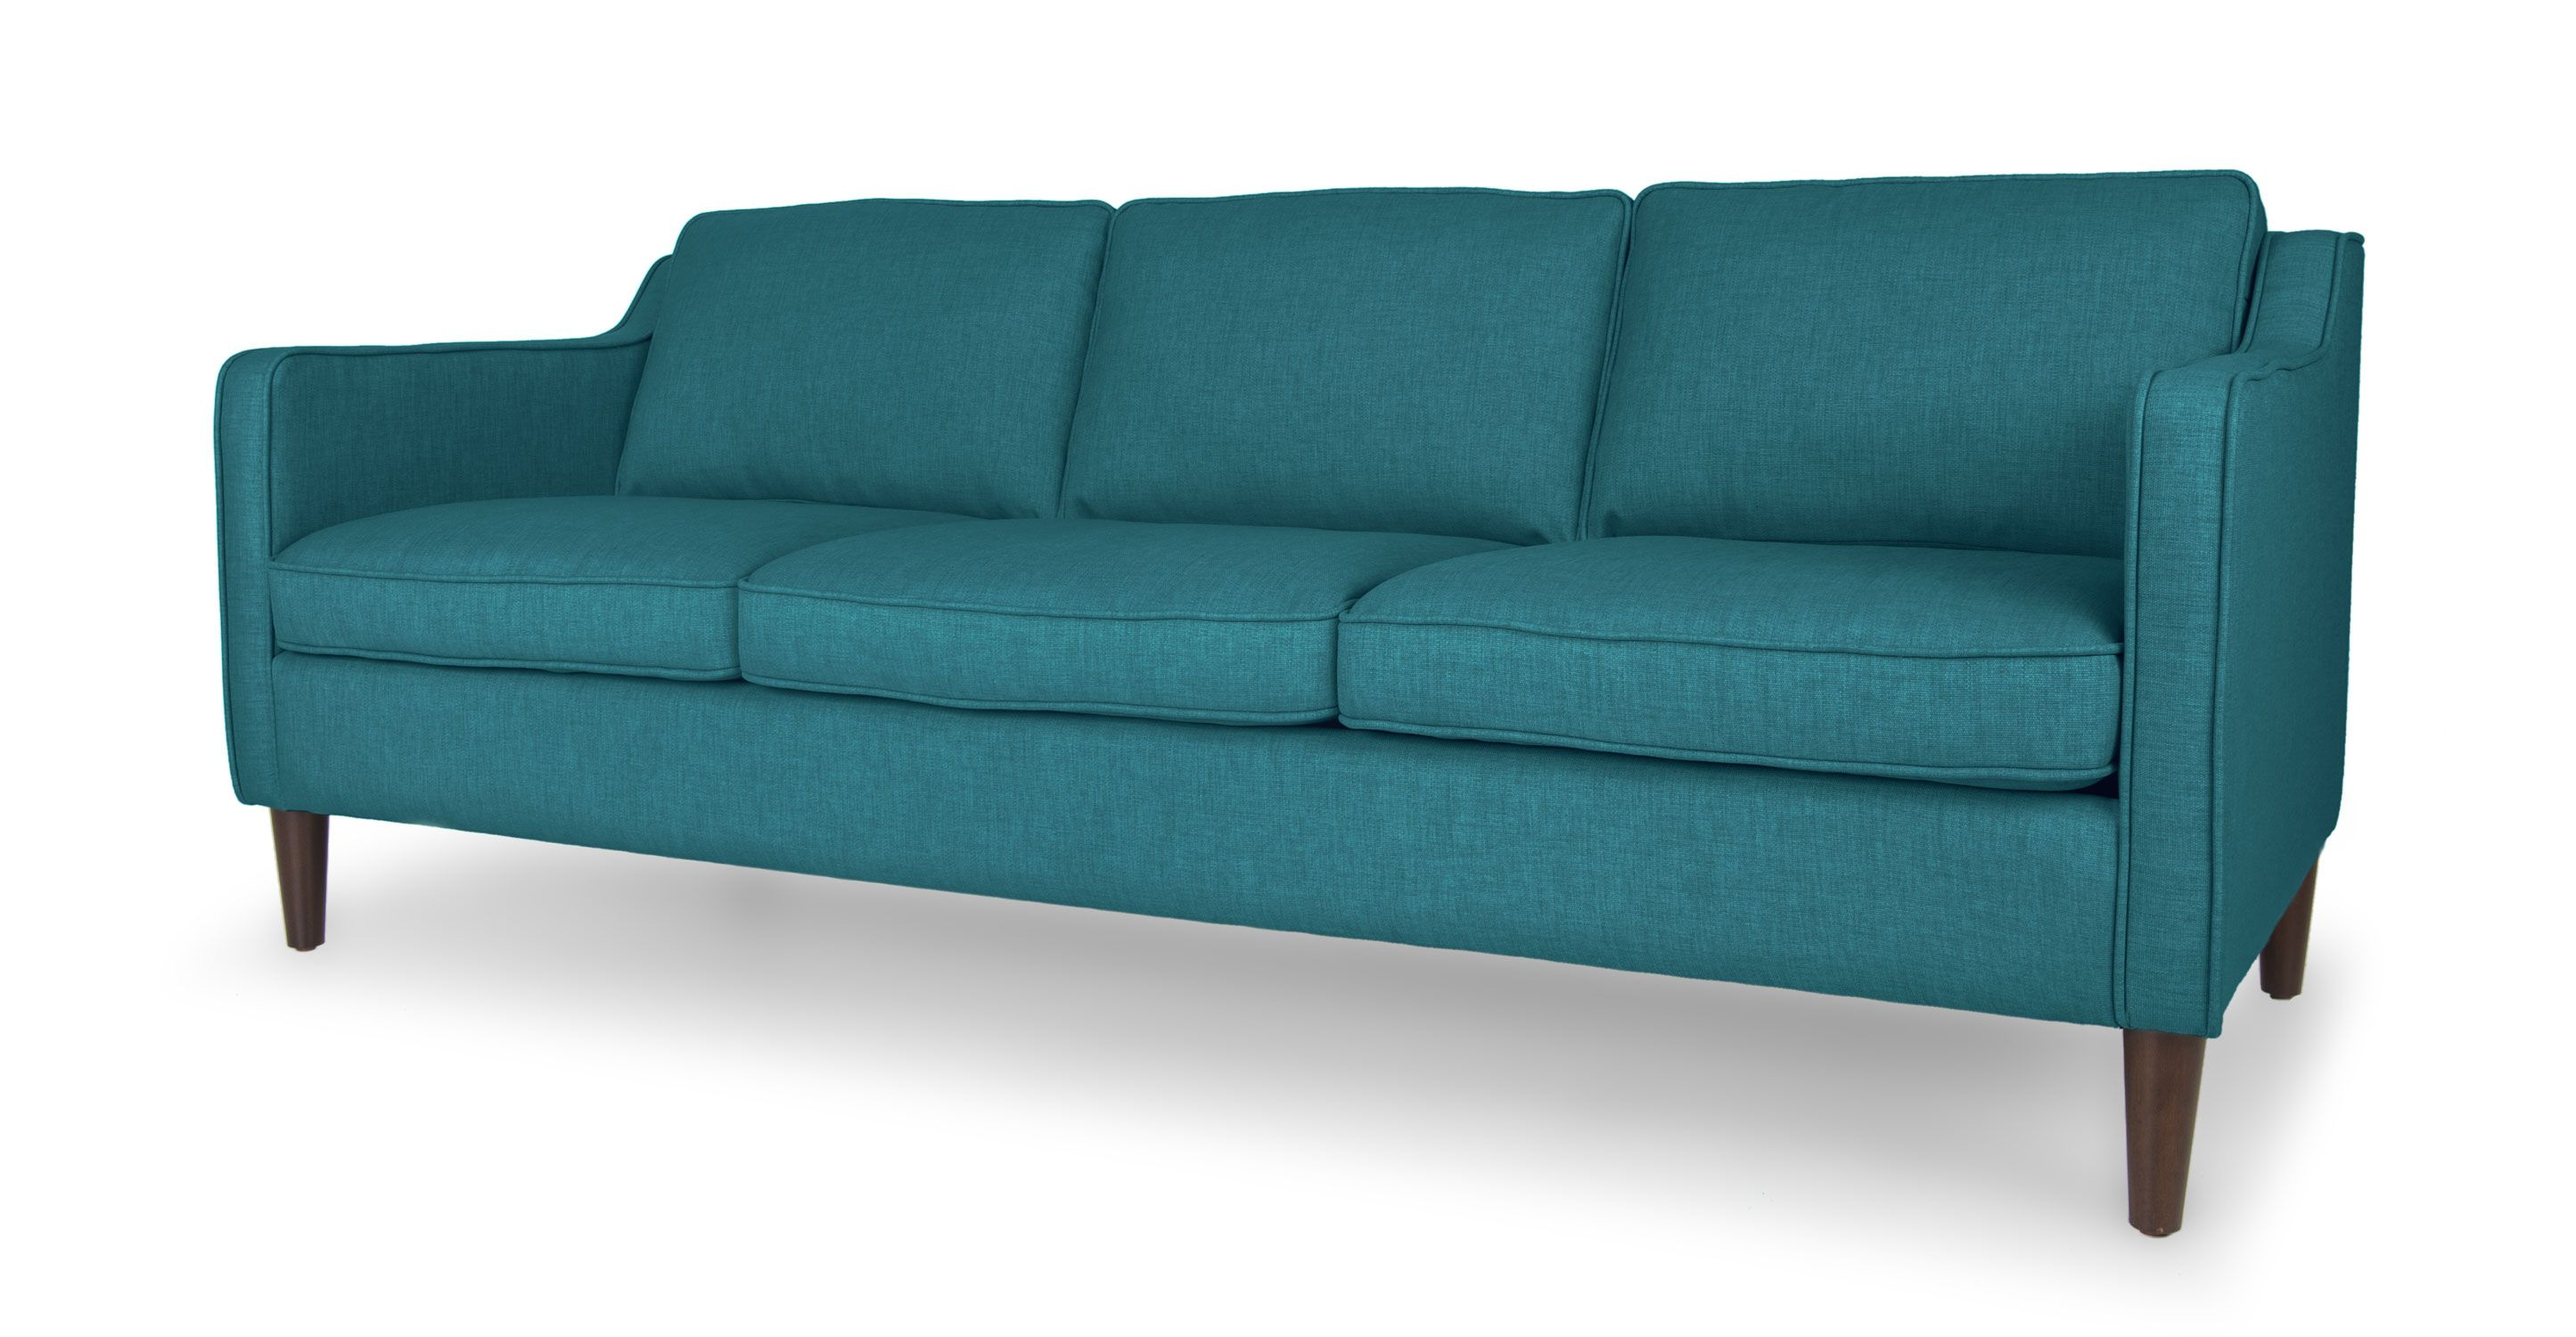 Teal Sofa 3 Seat Brown Wood Legs